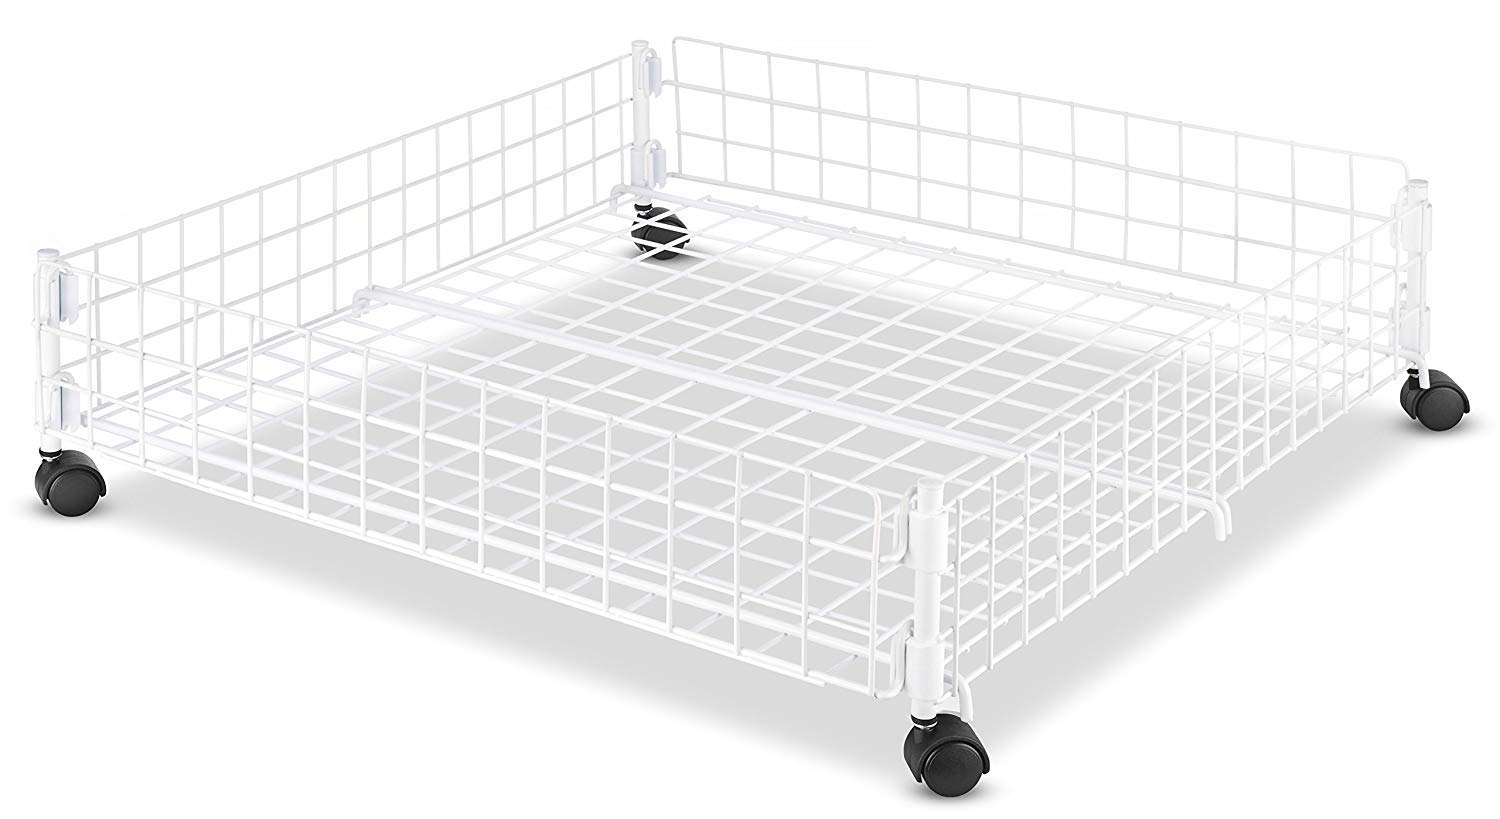 Rolling Underbed Storage Drawers Heavy Duty Frame With A White Epoxy Finish Equipped With Wheels For Quick Access For Clothes Shoes Bags And More Lifts